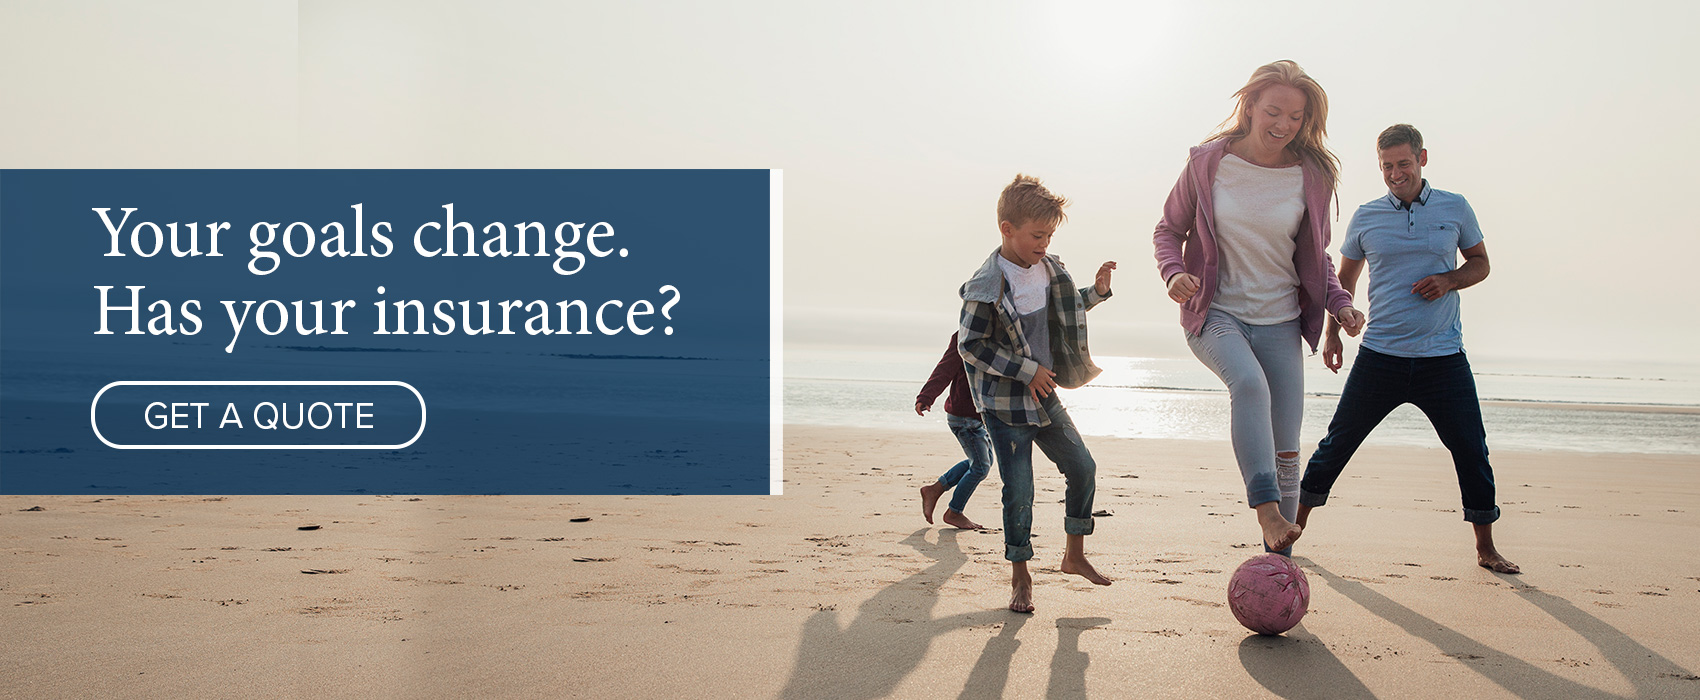 Your goals change - Has your insurance